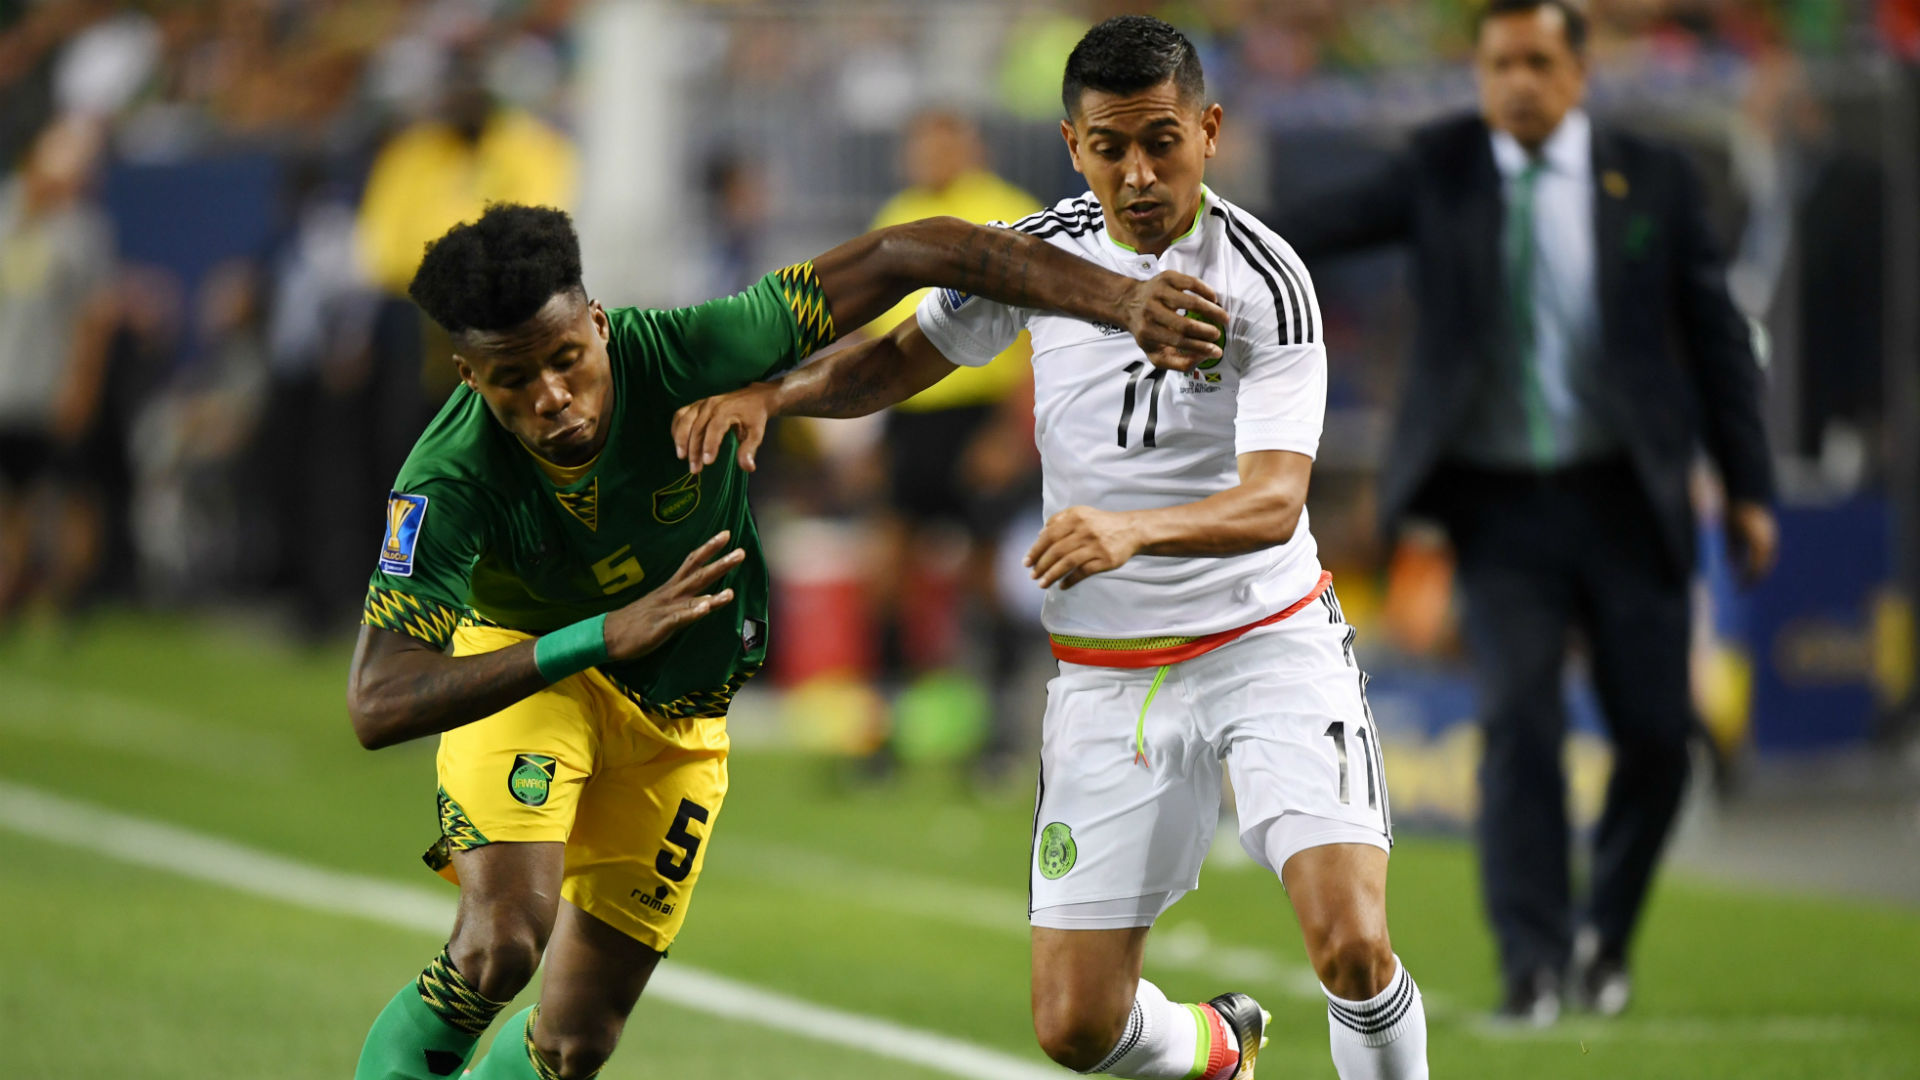 Gold Cup: Mexico, Jamaica play to scoreless draw